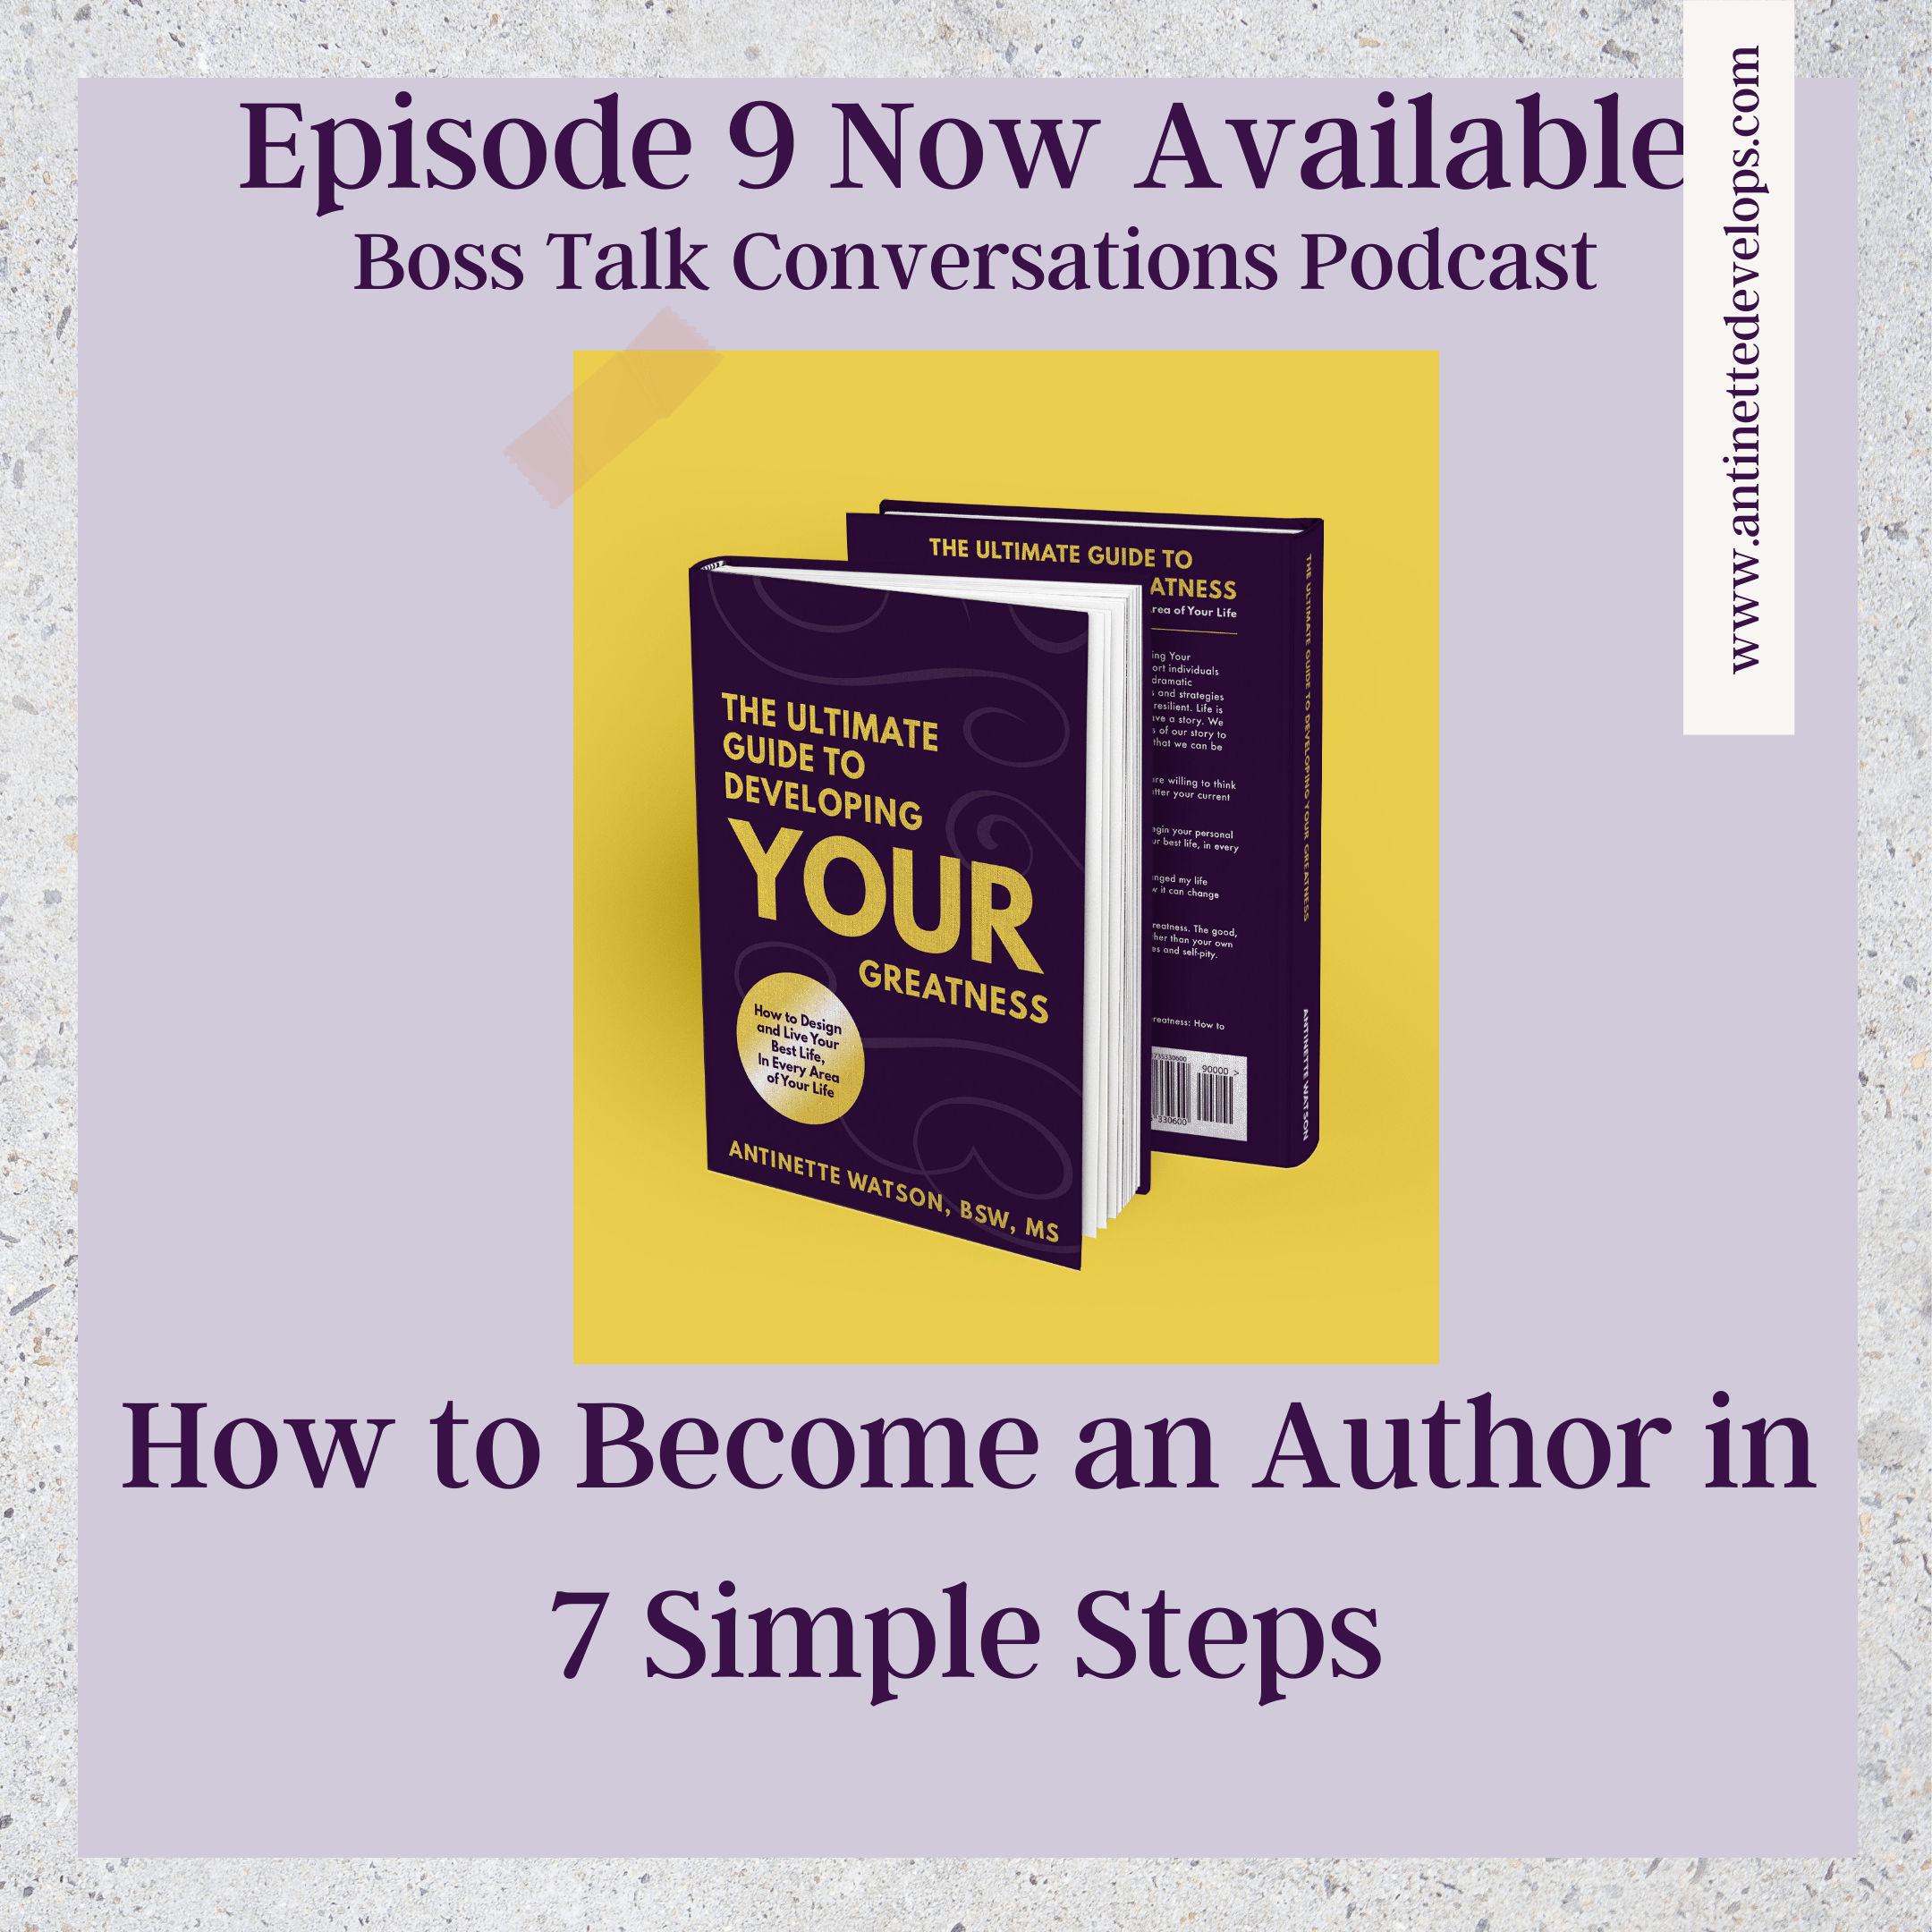 Episode 9: How to Become an Author in 7 Simple Steps